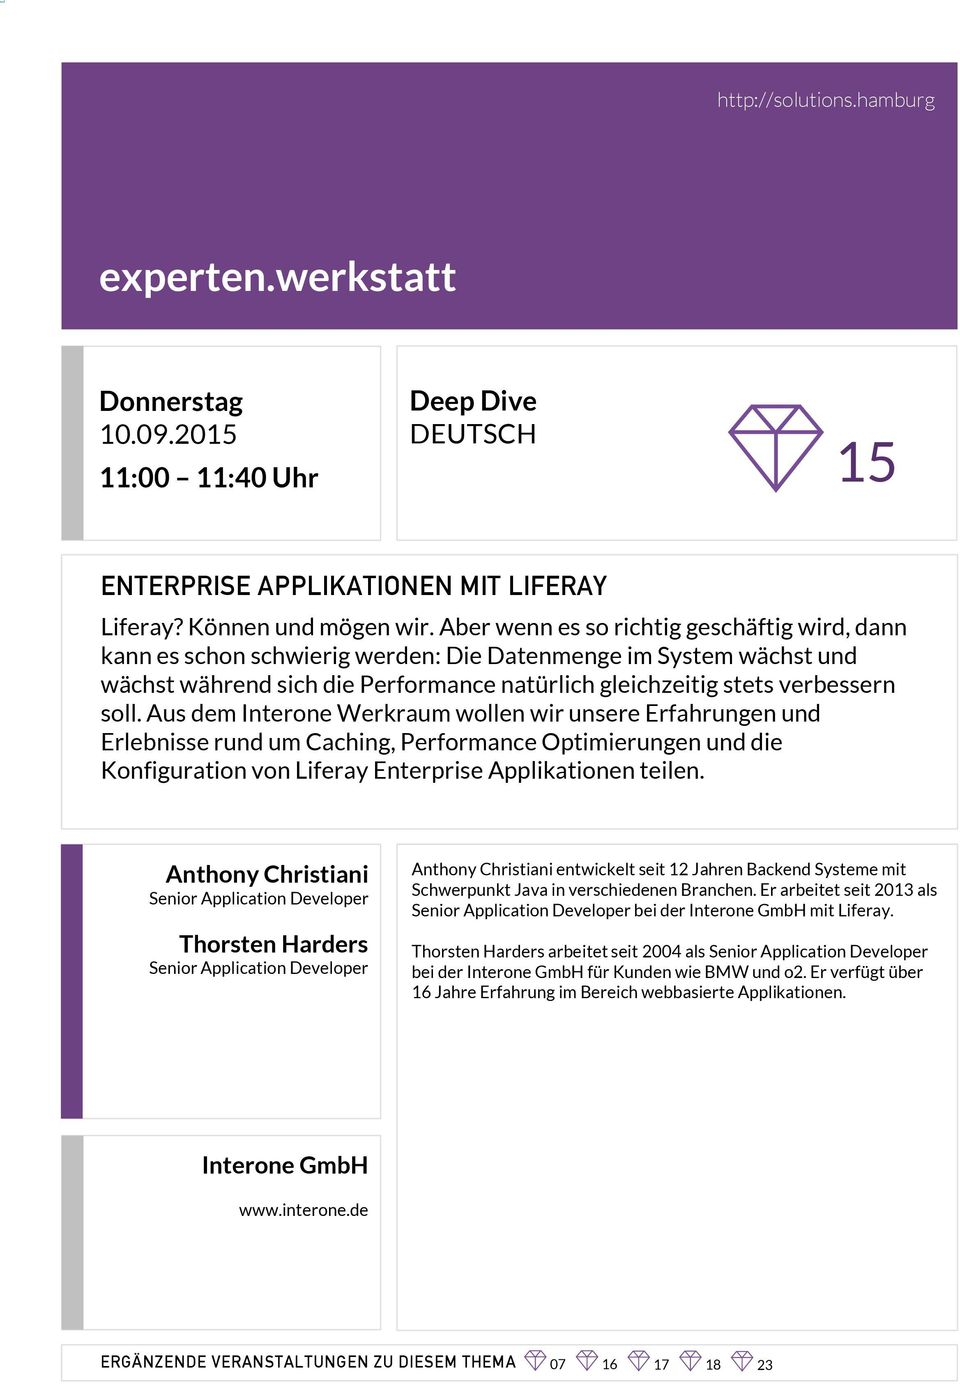 Aus dem Interone Werkraum wollen wir unsere Erfahrungen und Erlebnisse rund um Caching, Performance Optimierungen und die Konfiguration von Liferay Enterprise Applikationen teilen.